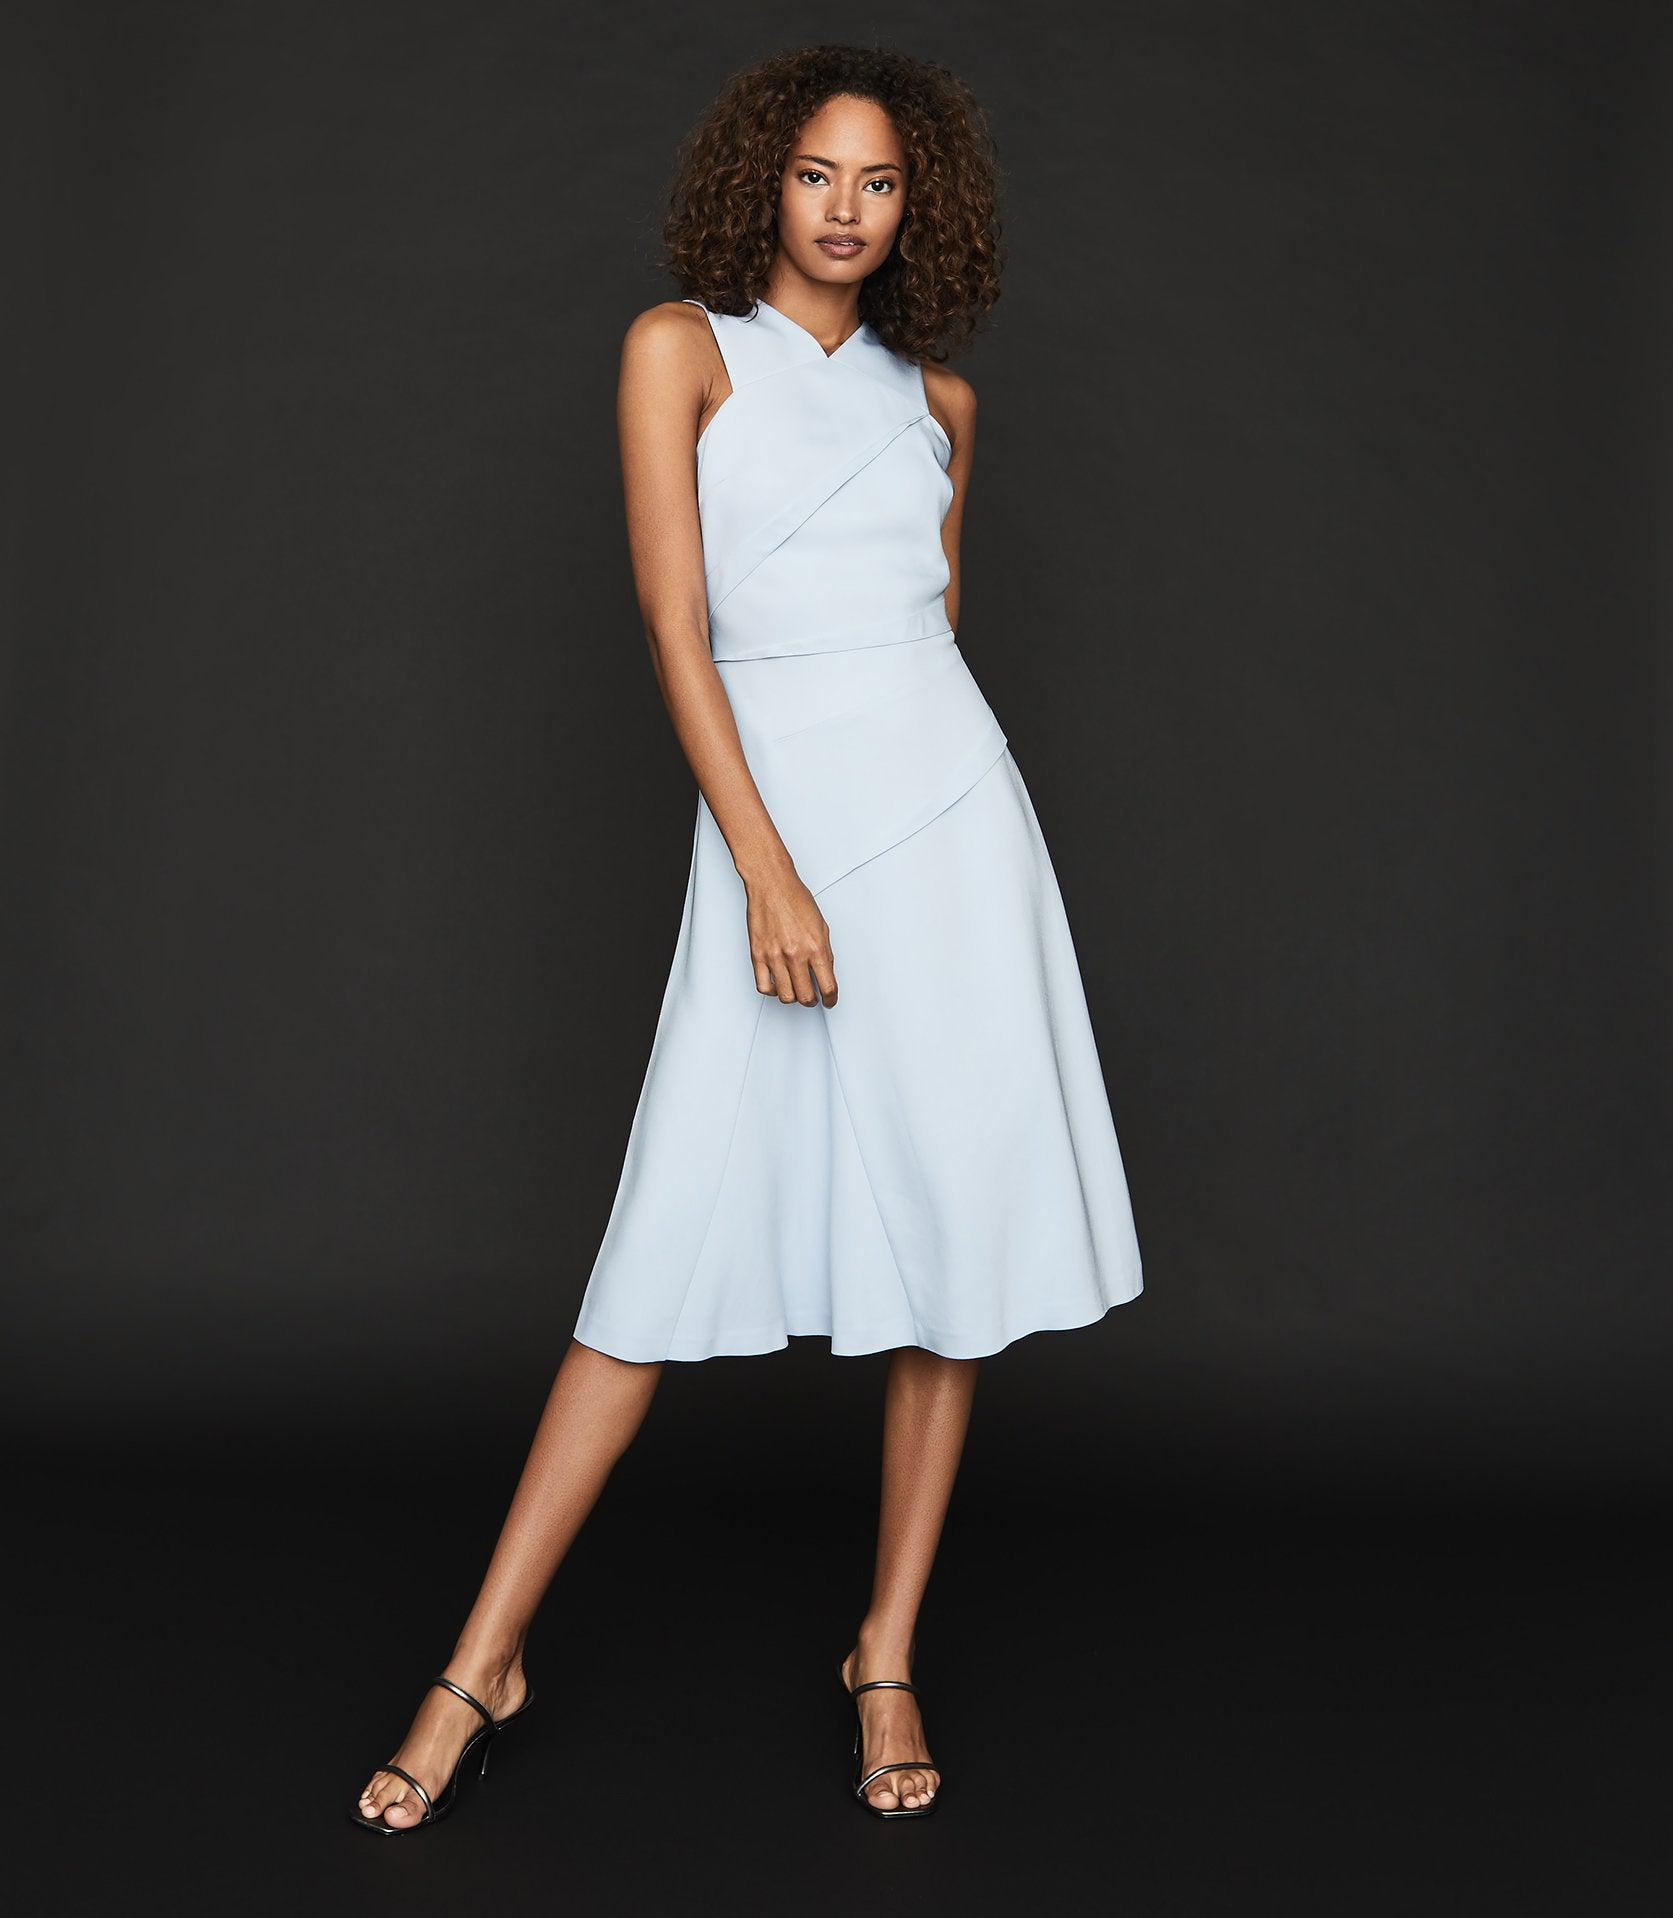 PAIGE - FIT-AND-FLARE MIDI DRESS